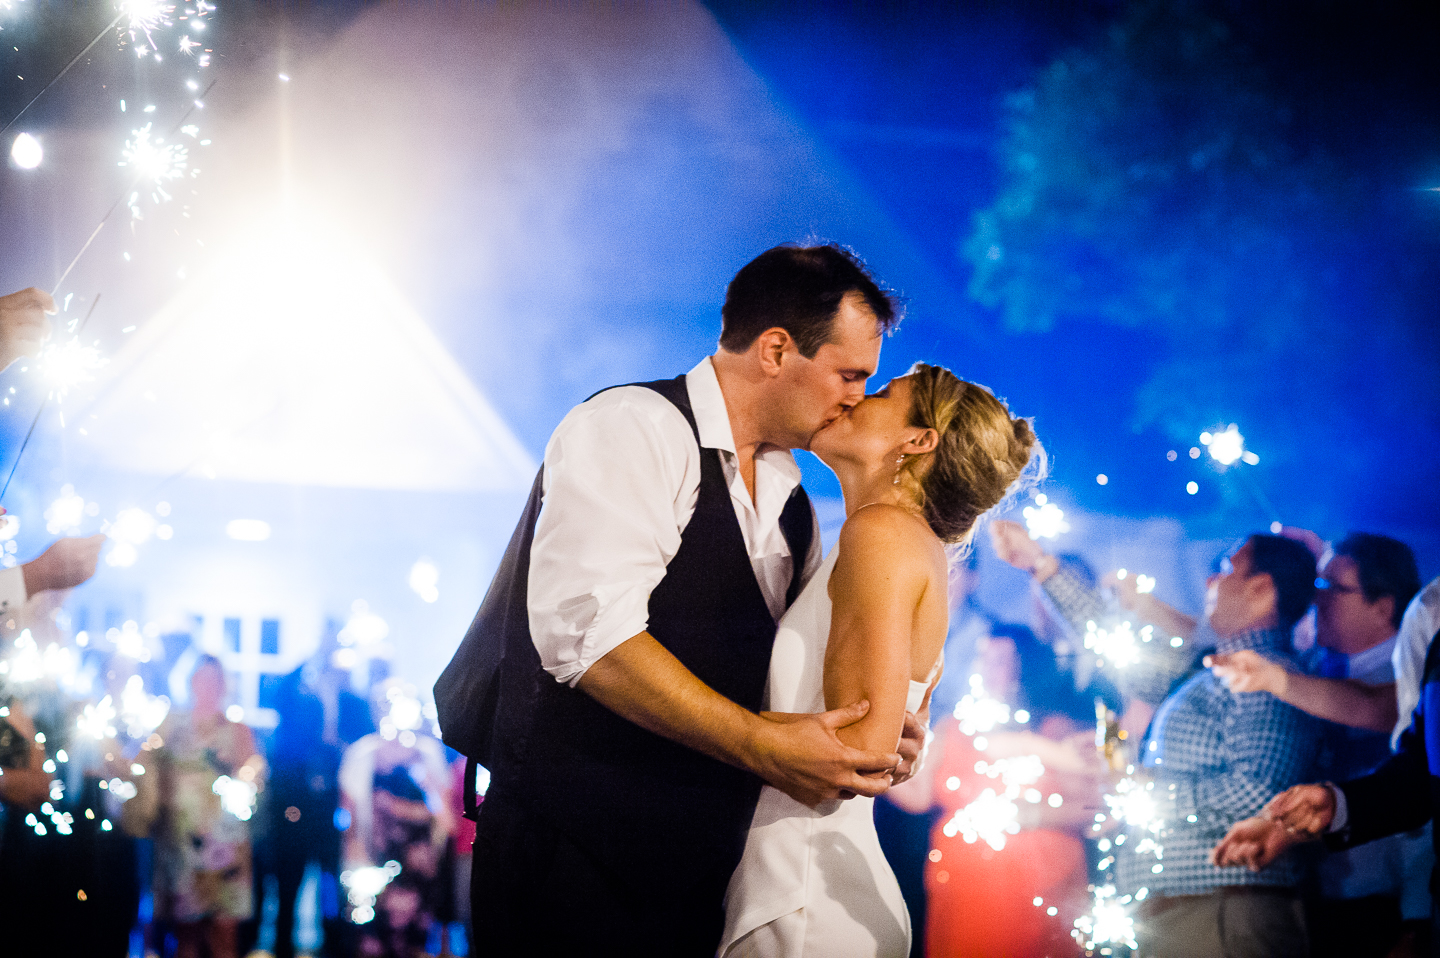 a bride and groom stop to kiss during their sparkler exit at the end of the wedding reception